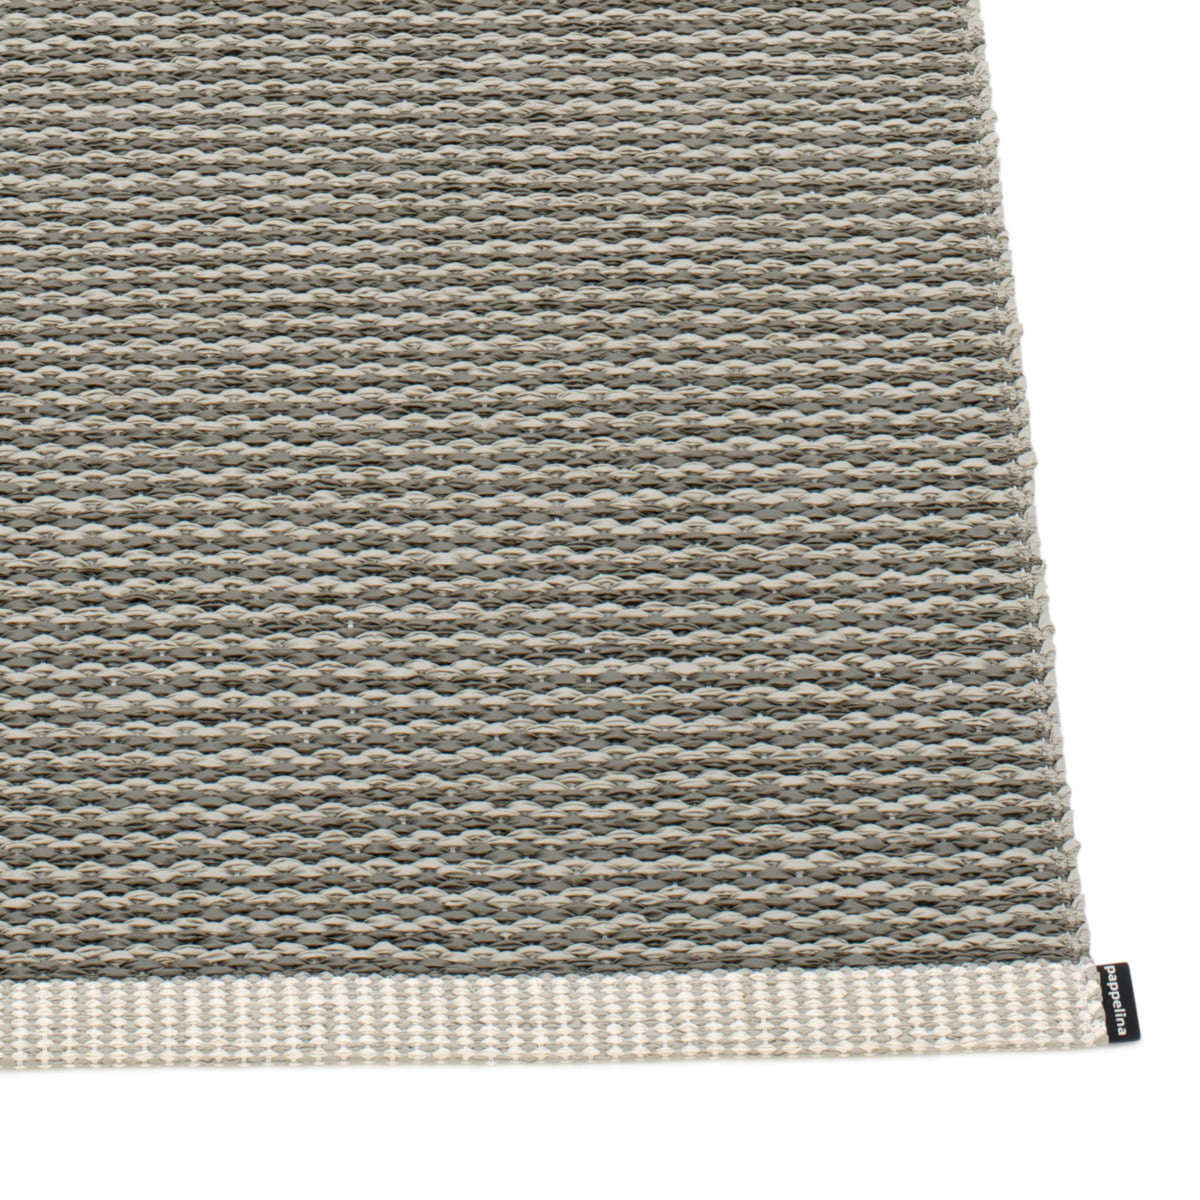 Mono Rug 60 Cm By Pappelina Connox